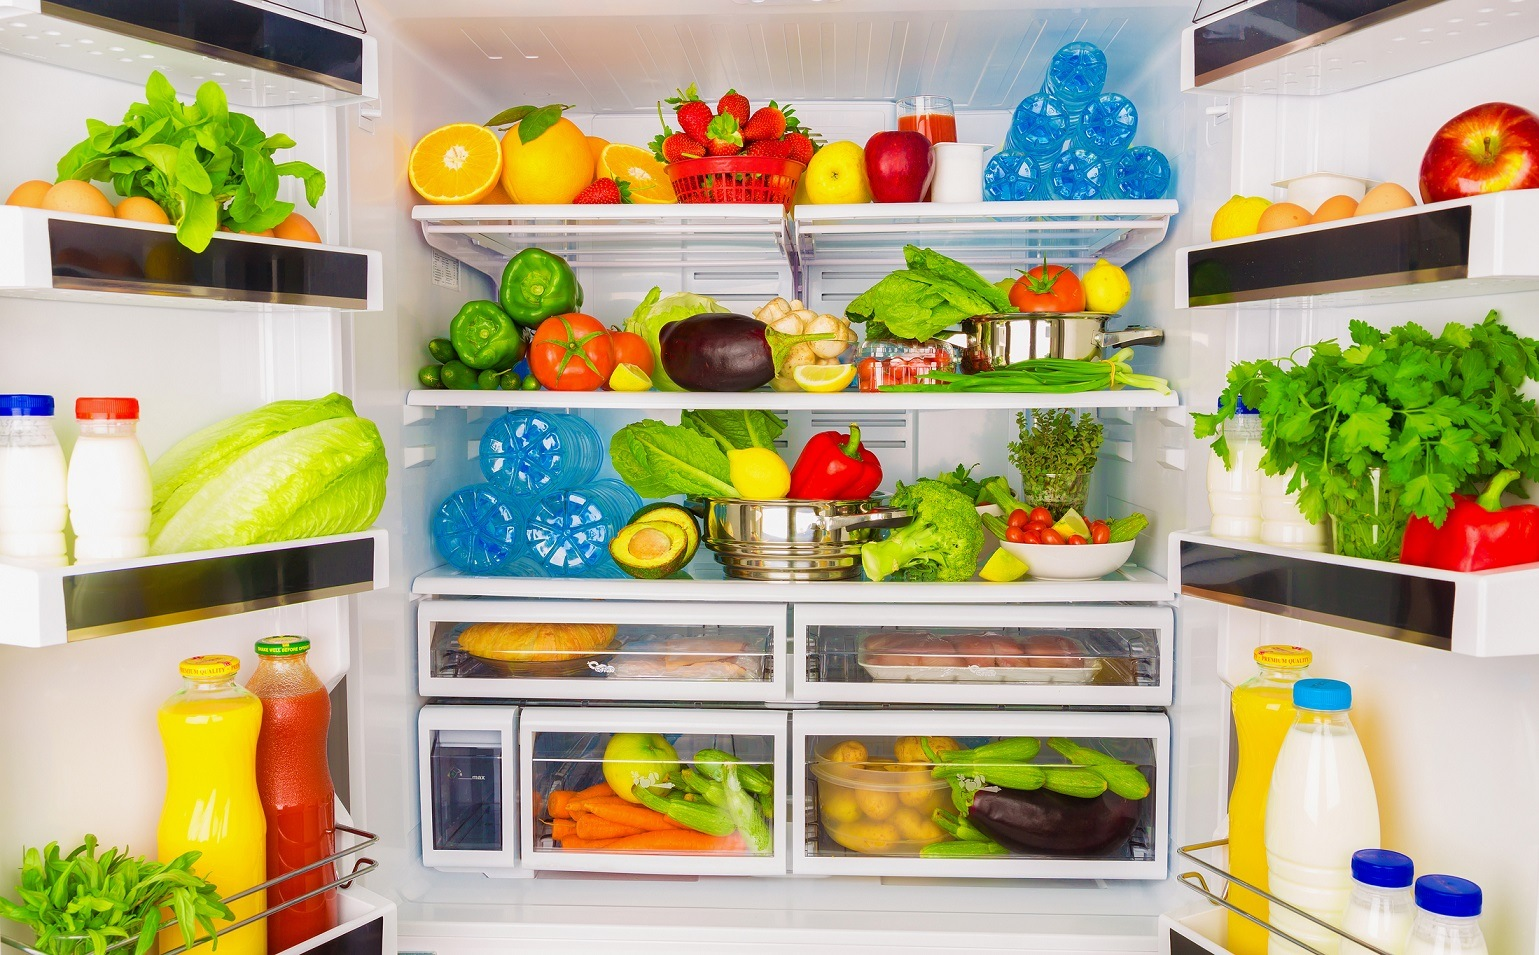 Full fridge with fruit and veggies